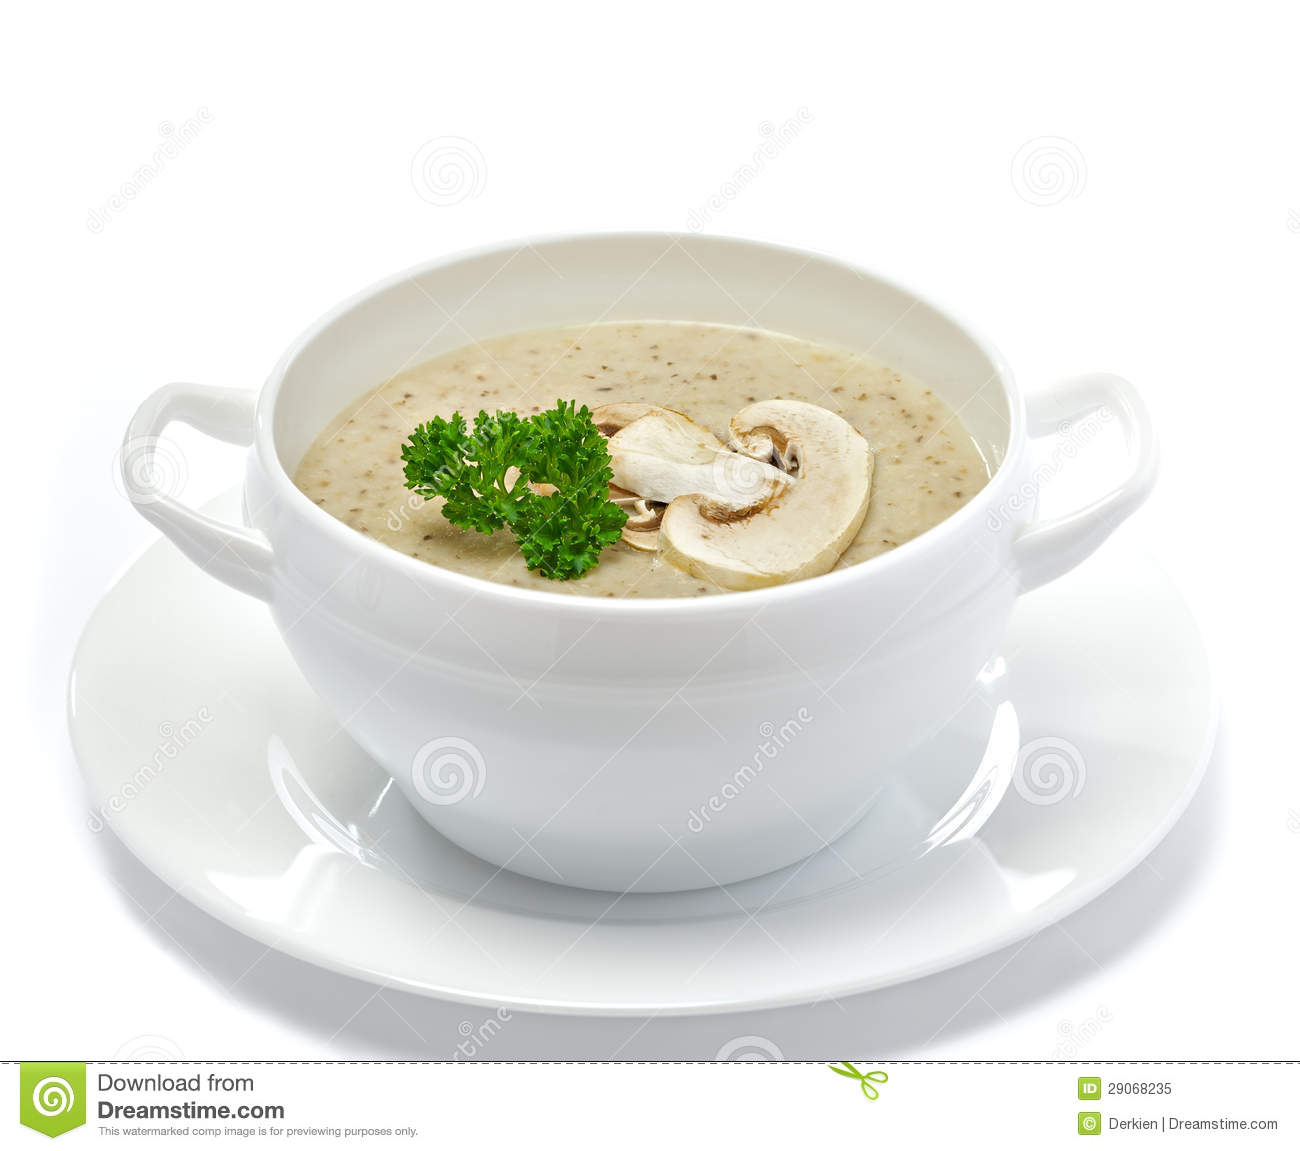 Mushroom Cream Soup Royalty Free Stock Photo - Image: 29068235